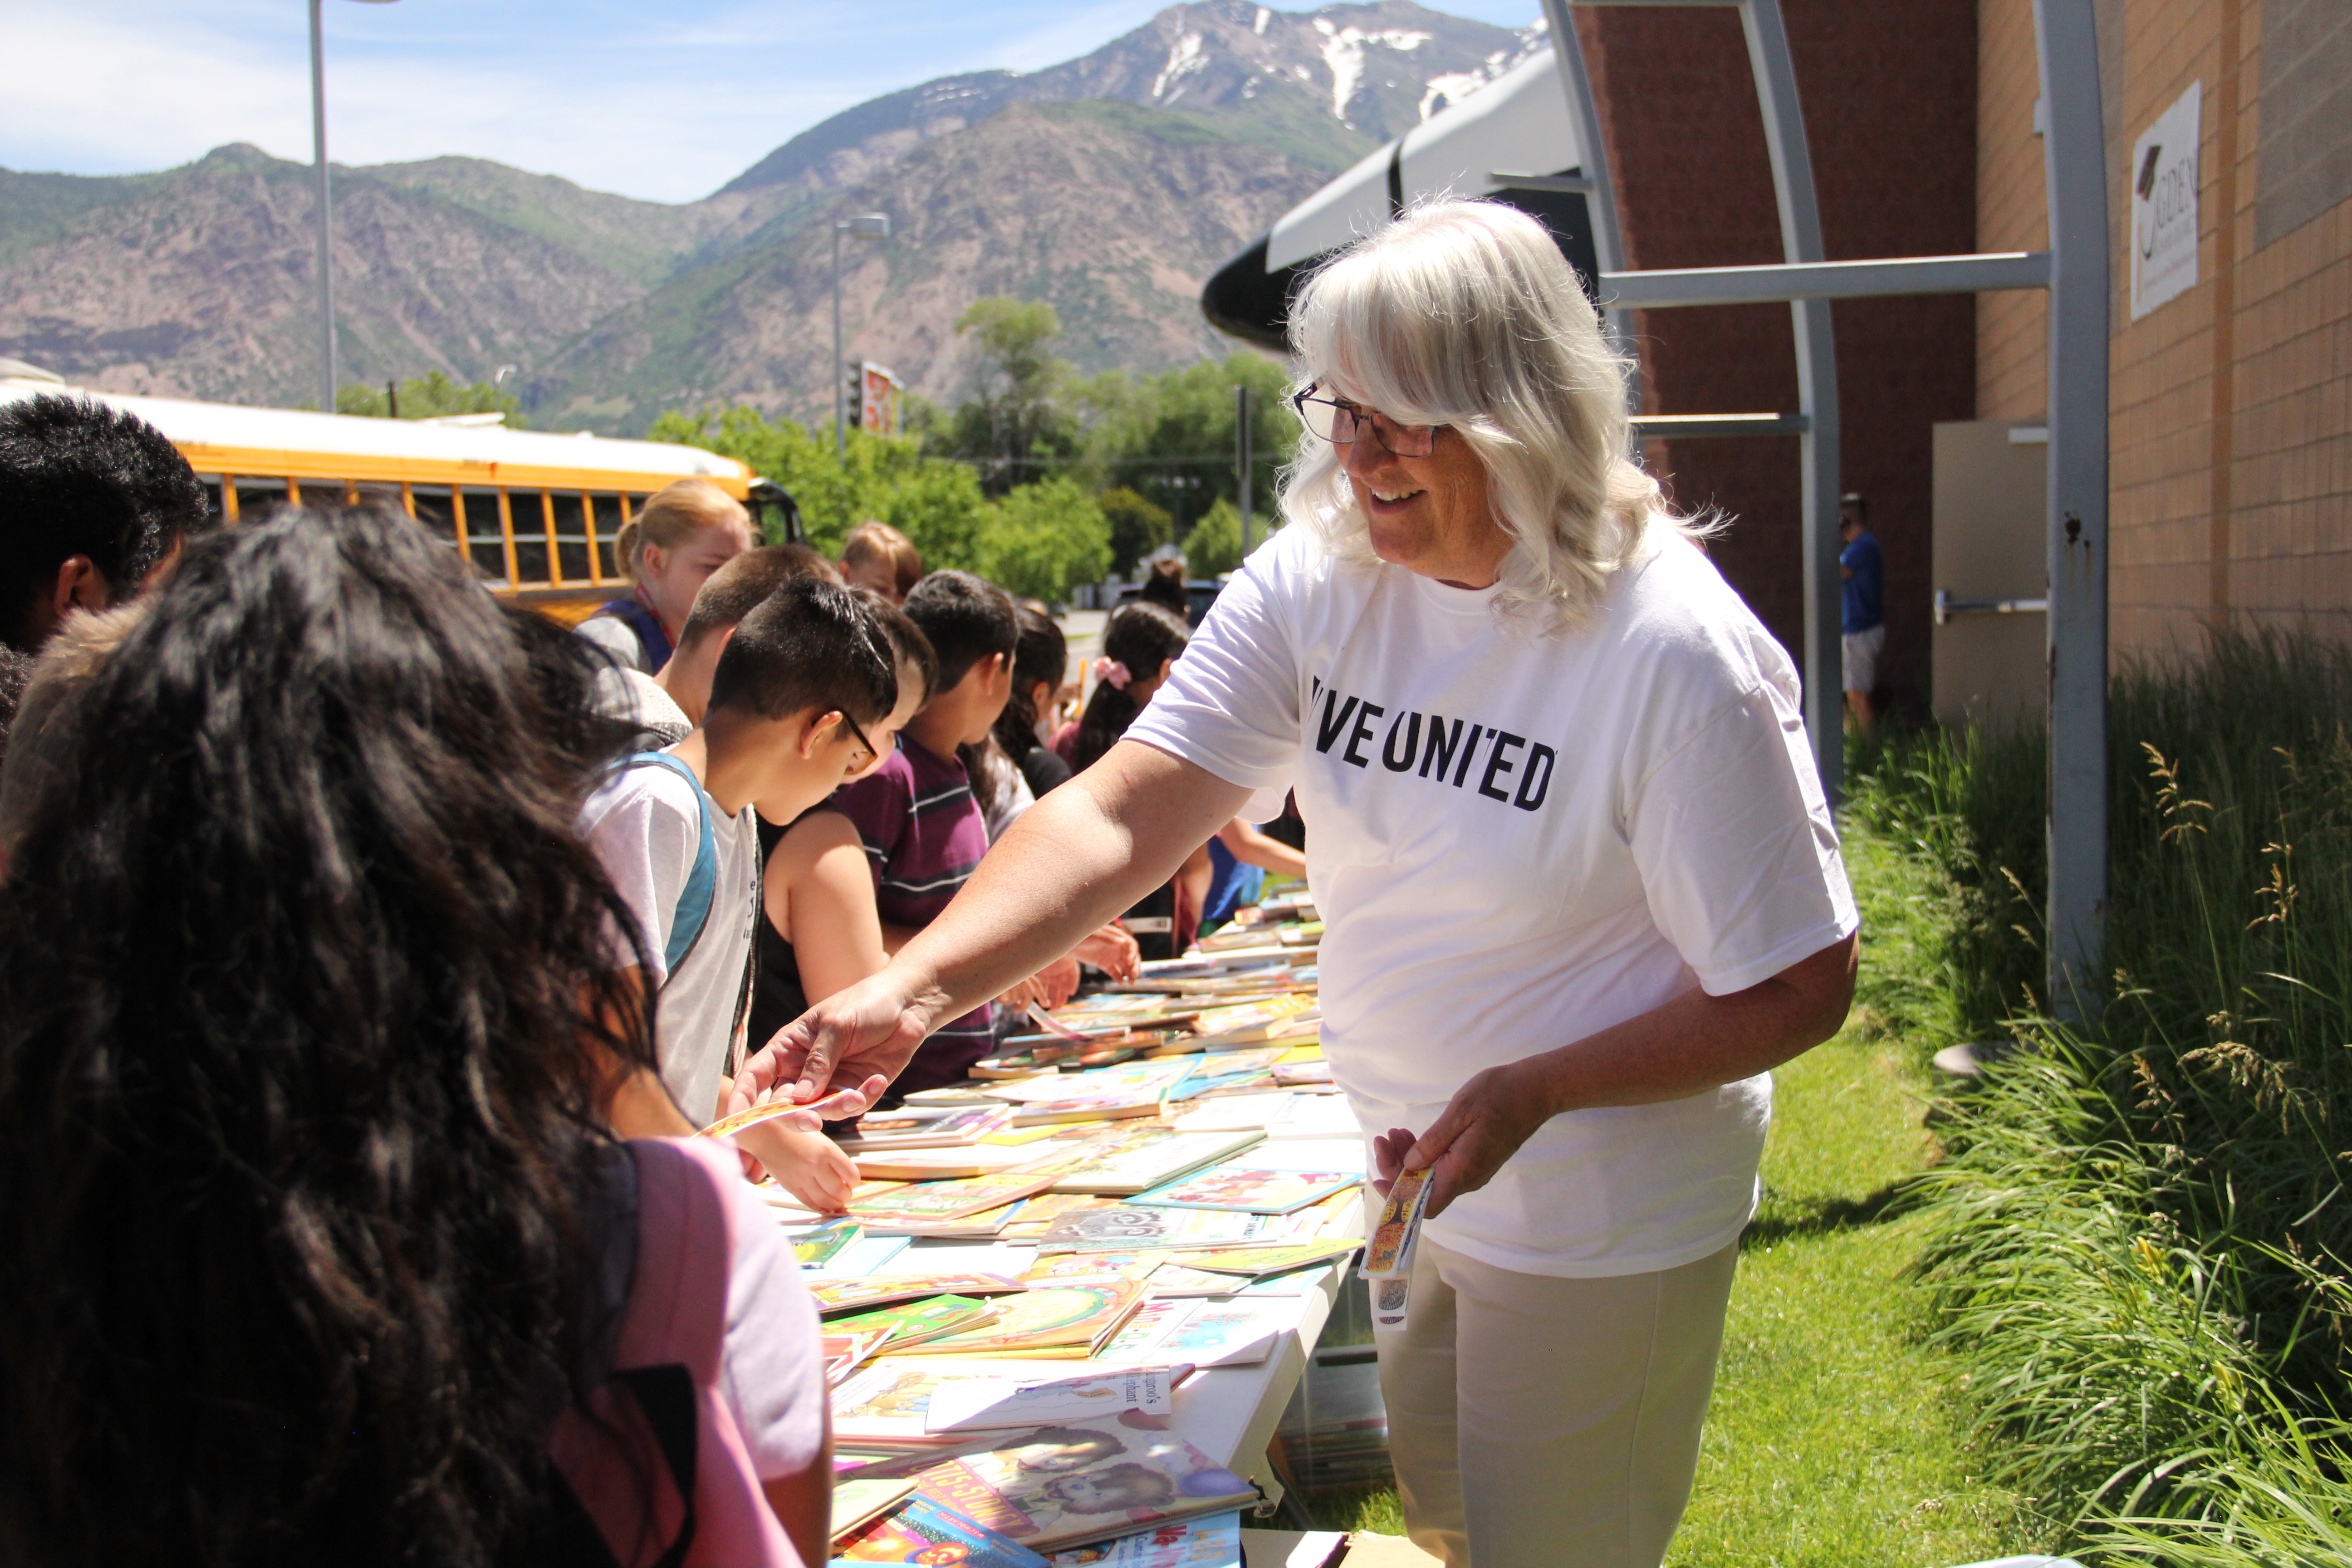 United Partnership Council expansion on education, housing and health efforts in Weber County